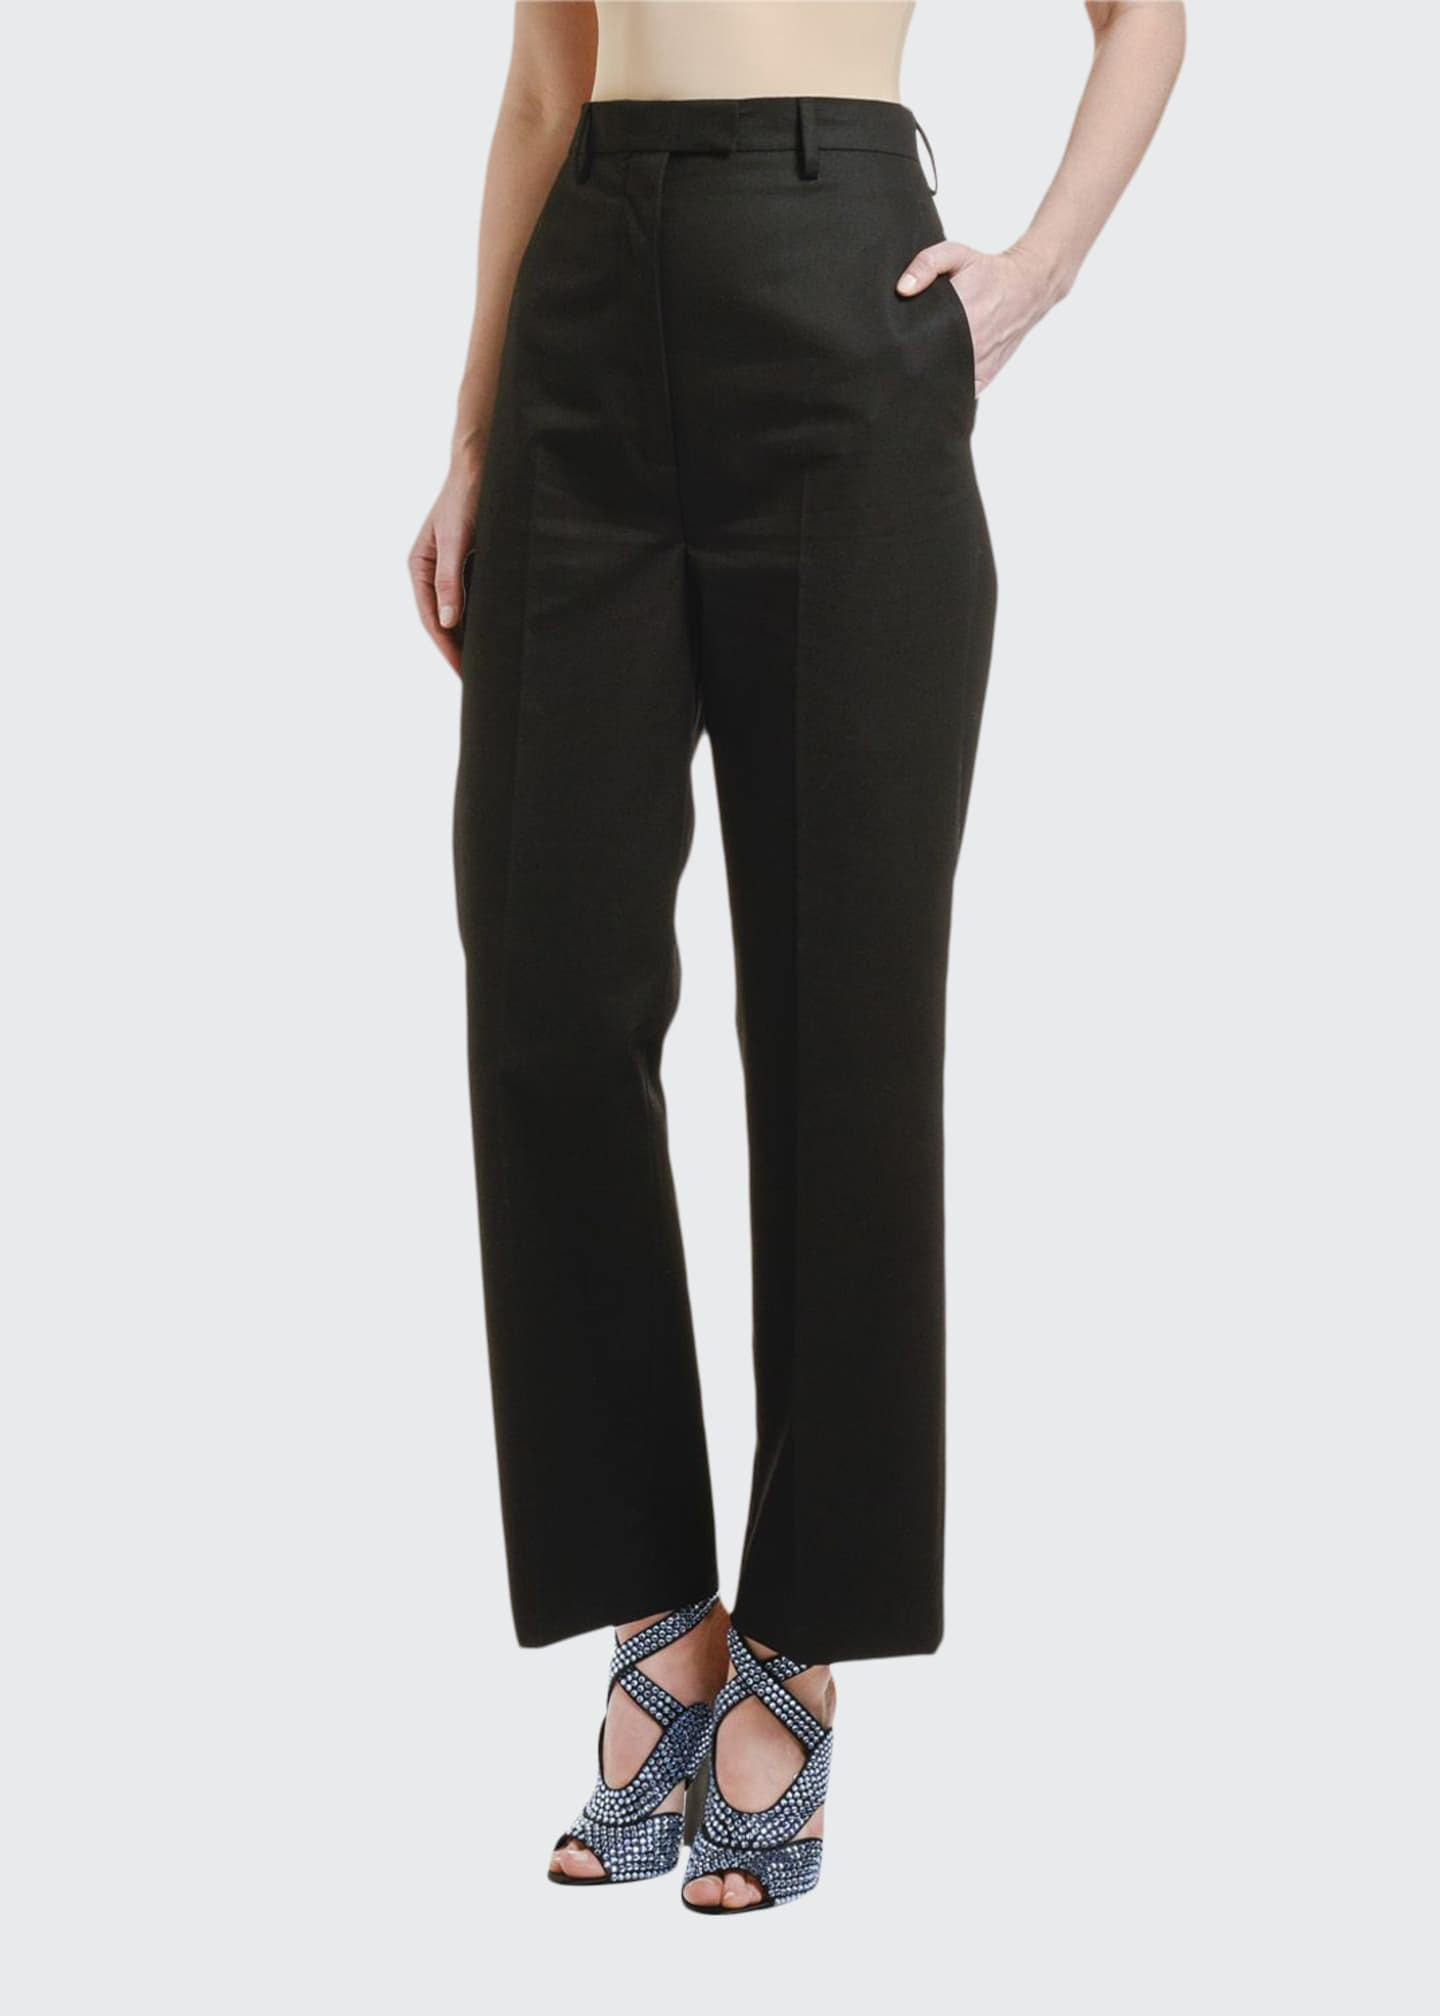 Prada High-Rise Straight-Leg Pants